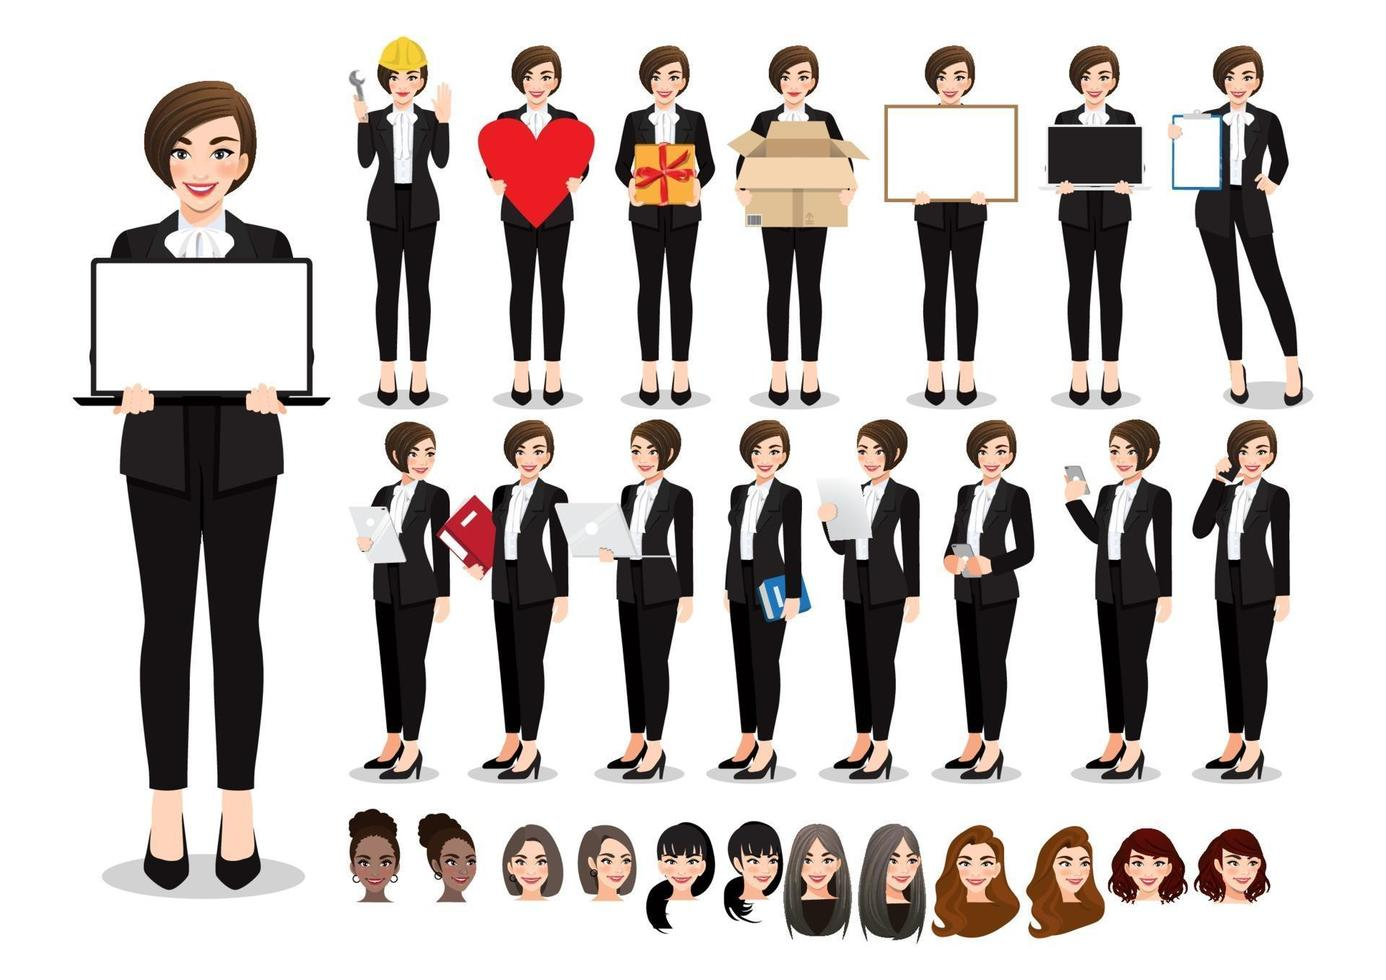 Businesswoman cartoon character pose set. Beautiful business woman in office style black suit. Vector illustration